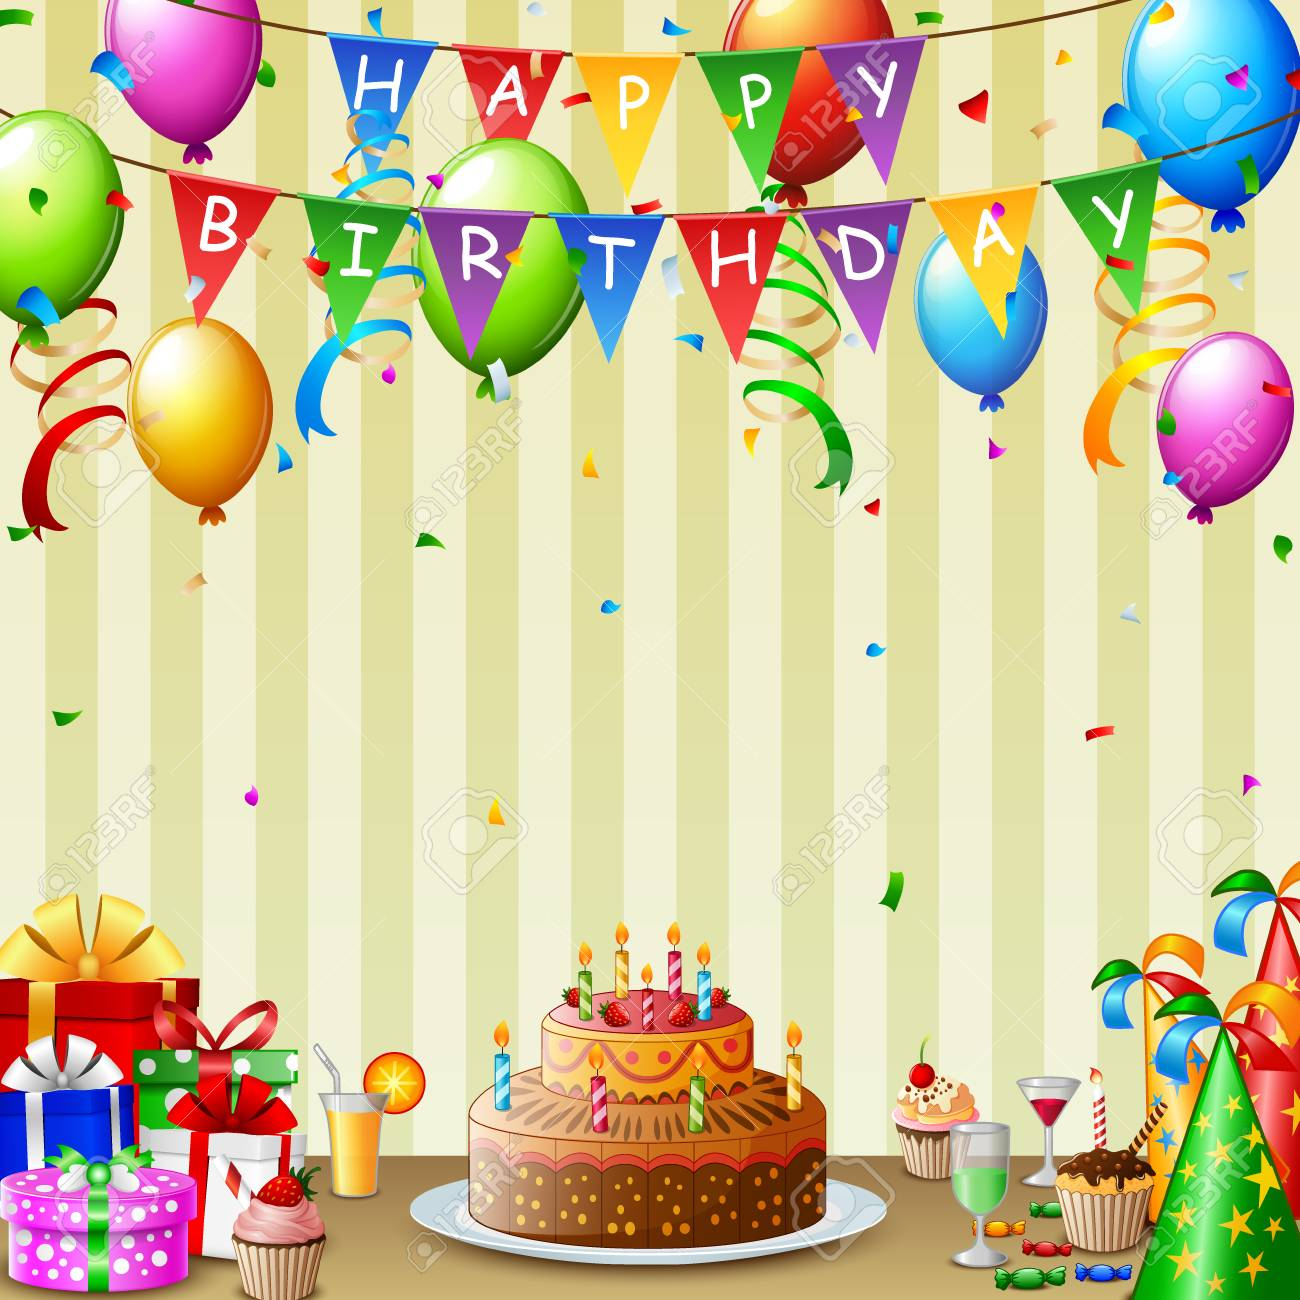 Birthday Background With Birthday Cake And Colorful Balloon Stock Photo Picture And Royalty Free Image Image 94442707